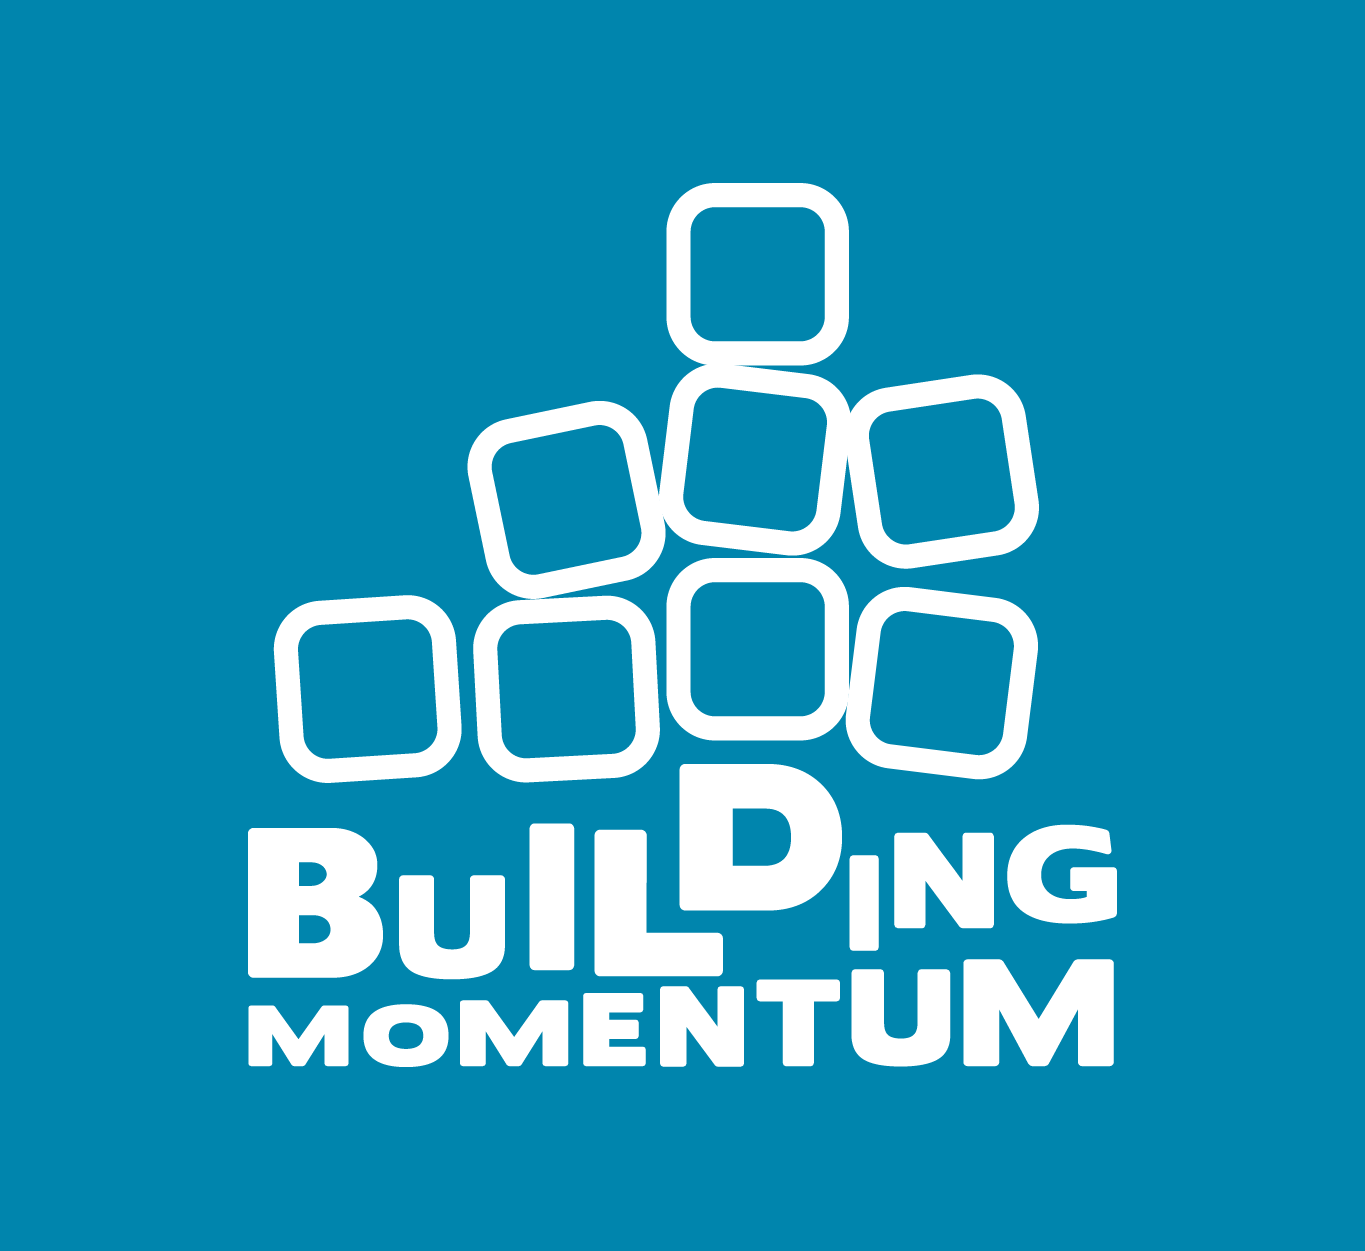 A blue box with white building blocks that says: Building Momentum.